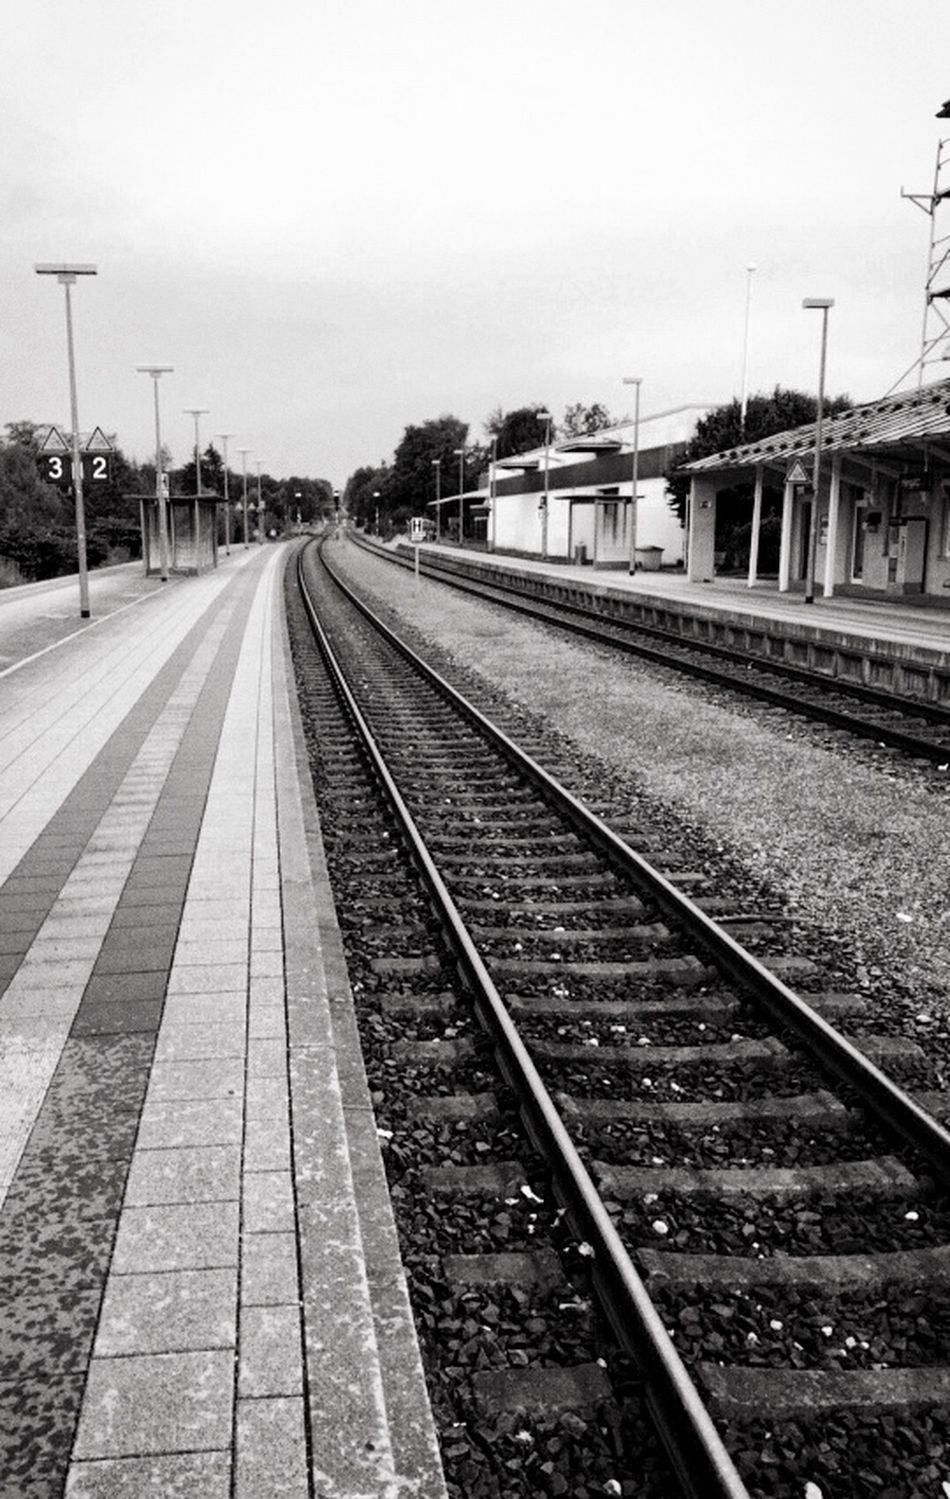 at the Train Station with my Iphone6 Railway Outside Taking Photos Empty Places Alone Public Transportation